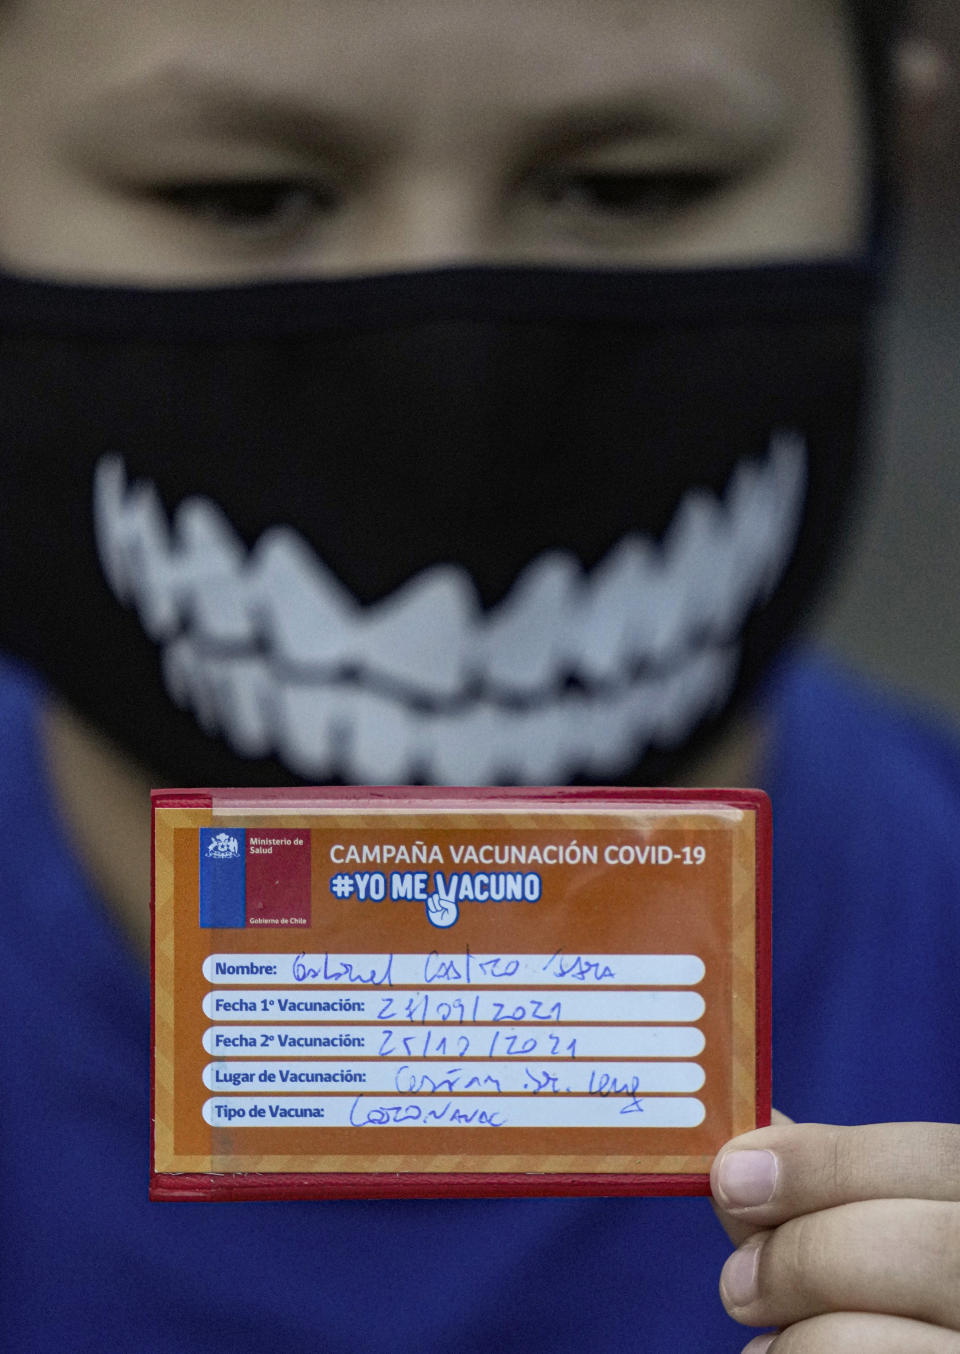 A child shows his vaccination card after getting a dose of the Coronavac COVID-19 vaccine at his school in Santiago, Chile, Monday, Sept. 27, 2021, during the start of vaccinations in schools for children between ages 6 to 11. (AP Photo/Esteban Felix)